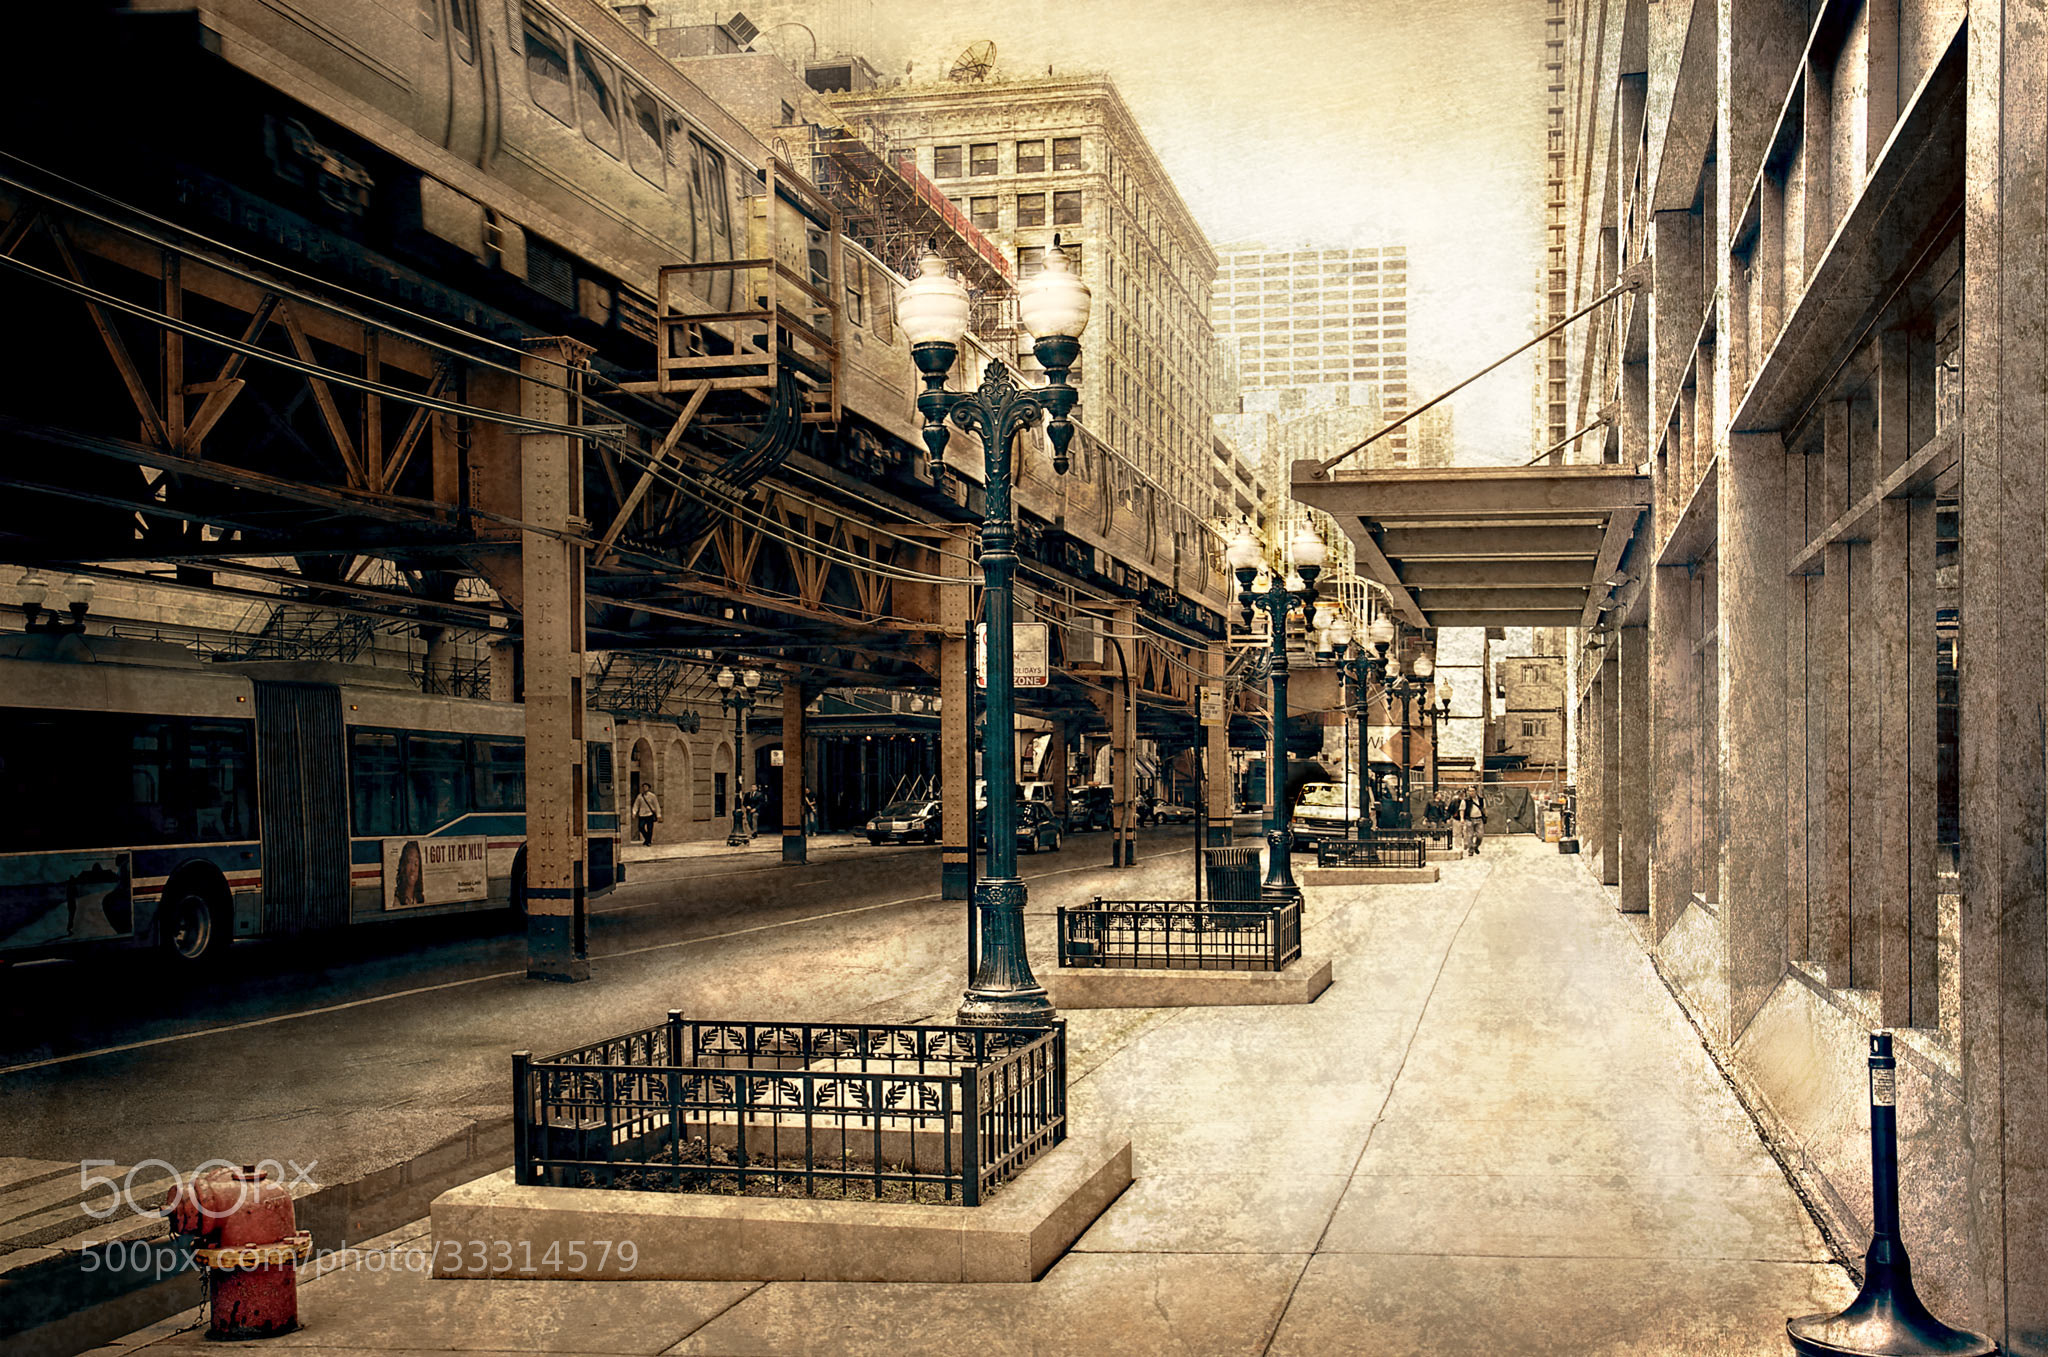 Photograph Chicago at the 'L' by Dirk Seifert on 500px